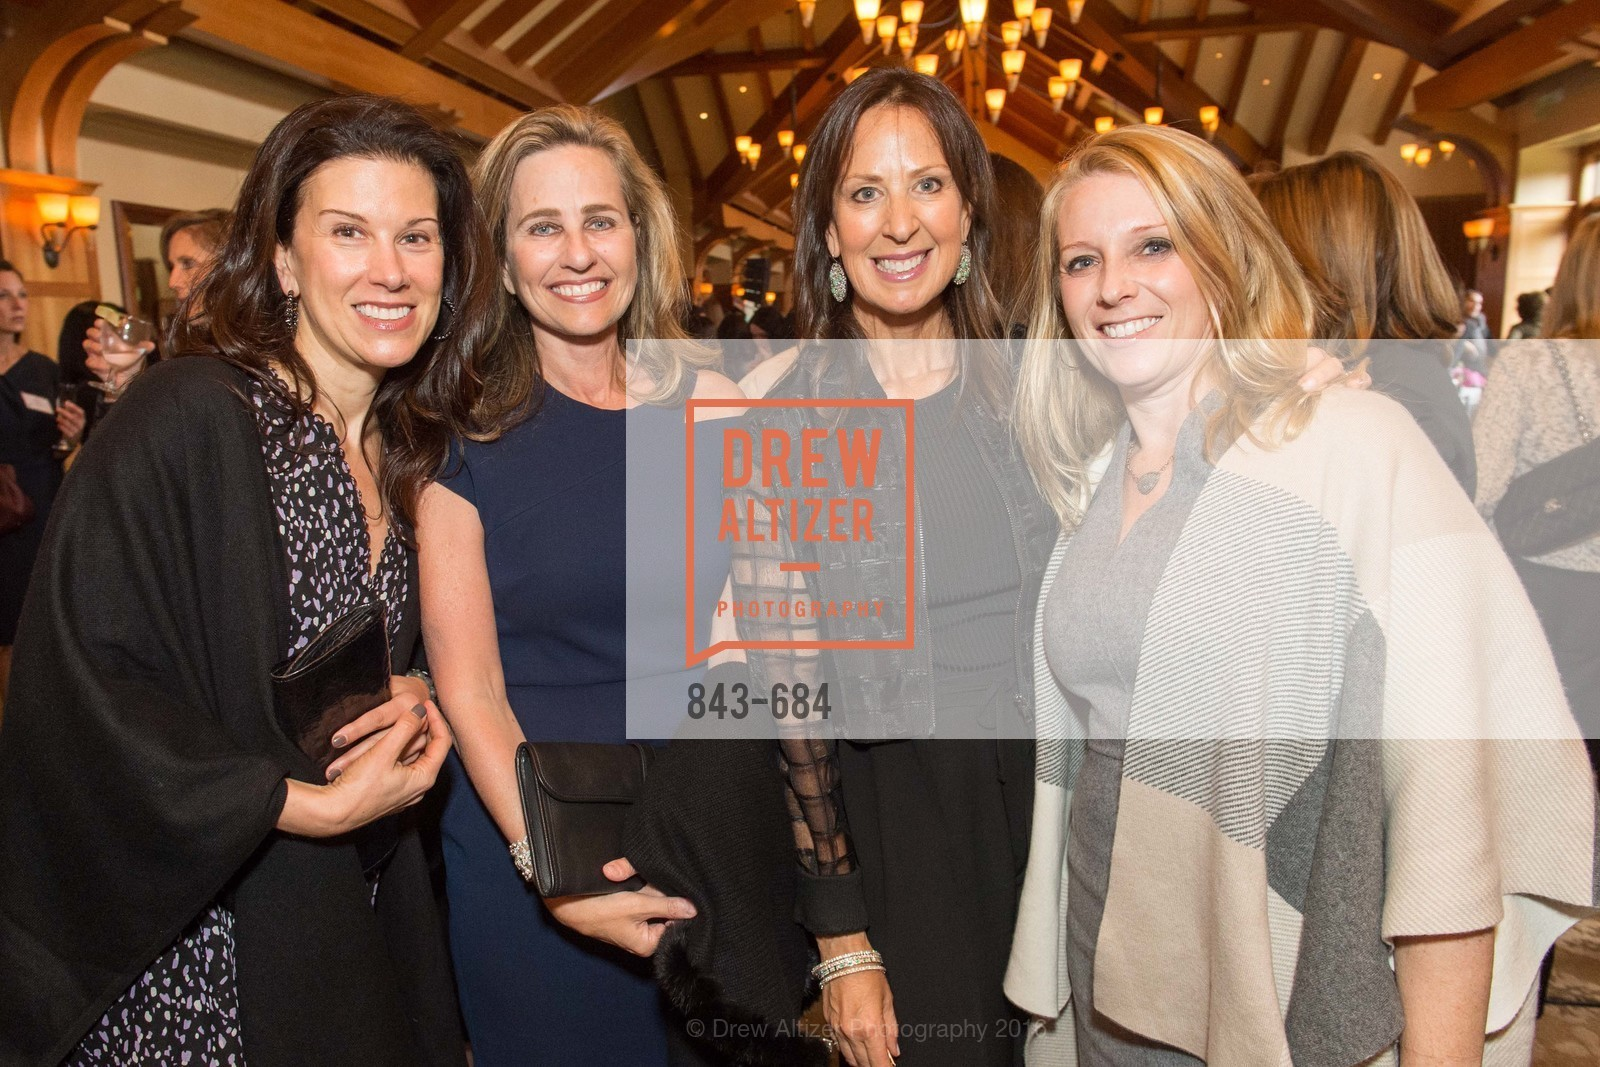 Nicole Smith, Gail Karp, Jessica Weil, Michelle Ebersman, Under One Umbrella, Sharon Heights Golf and Country Club, January 13th, 2016,Drew Altizer, Drew Altizer Photography, full-service agency, private events, San Francisco photographer, photographer california